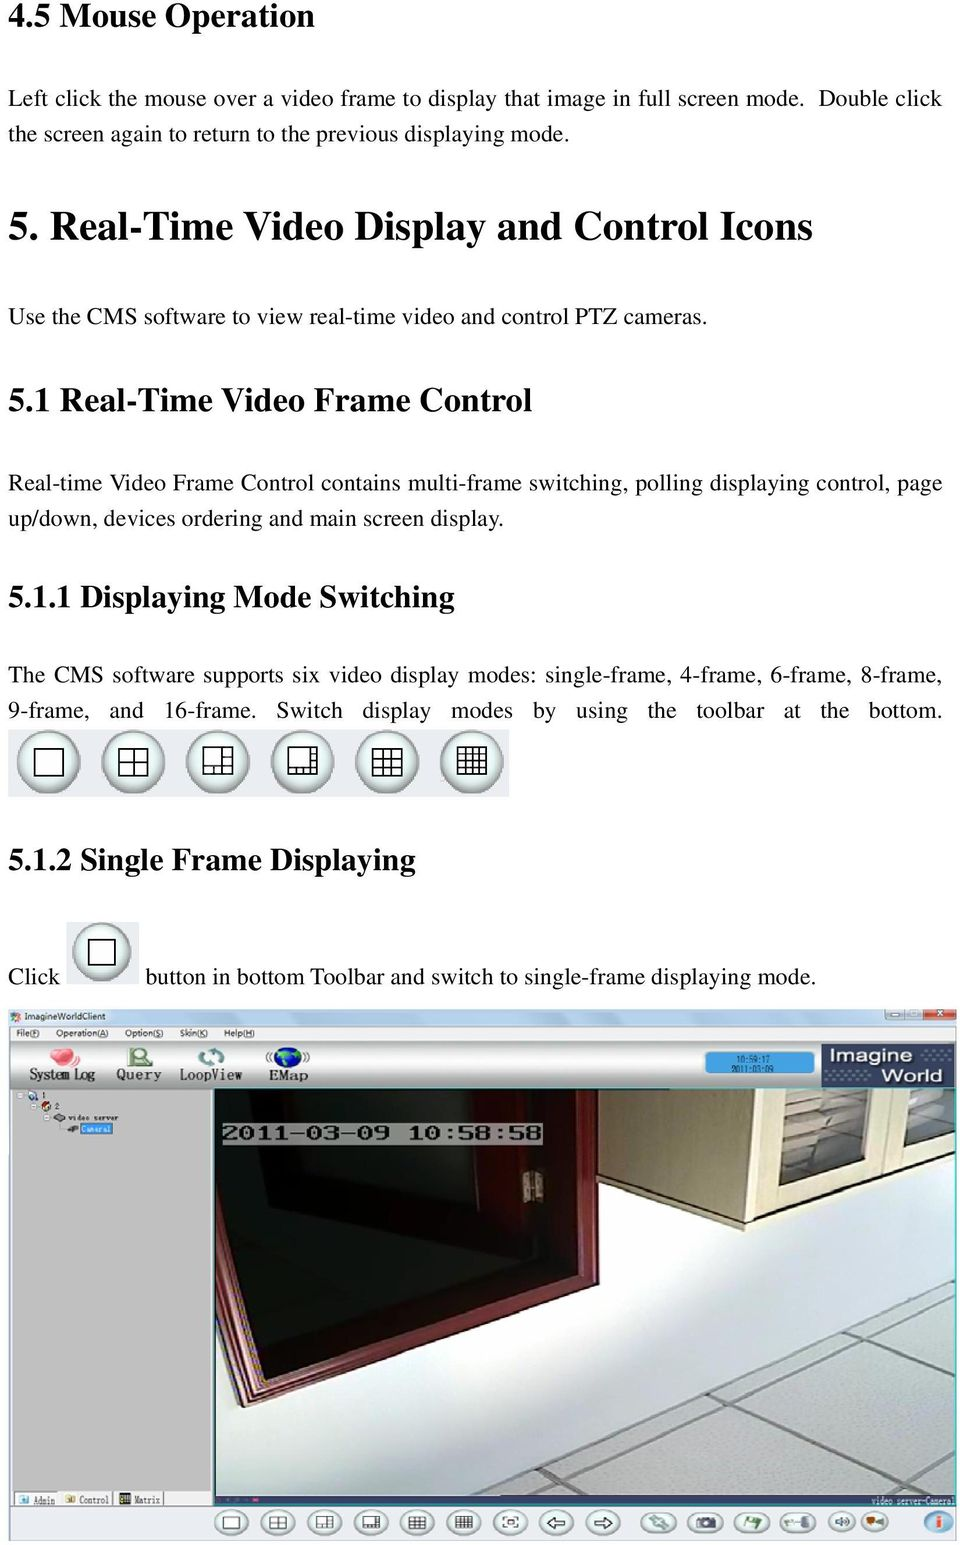 1 Real-Time Video Frame Control Real-time Video Frame Control contains multi-frame switching, polling displaying control, page up/down, devices ordering and main screen display. 5.1.1 Displaying Mode Switching The CMS software supports six video display modes: single-frame, 4-frame, 6-frame, 8-frame, 9-frame, and 16-frame.